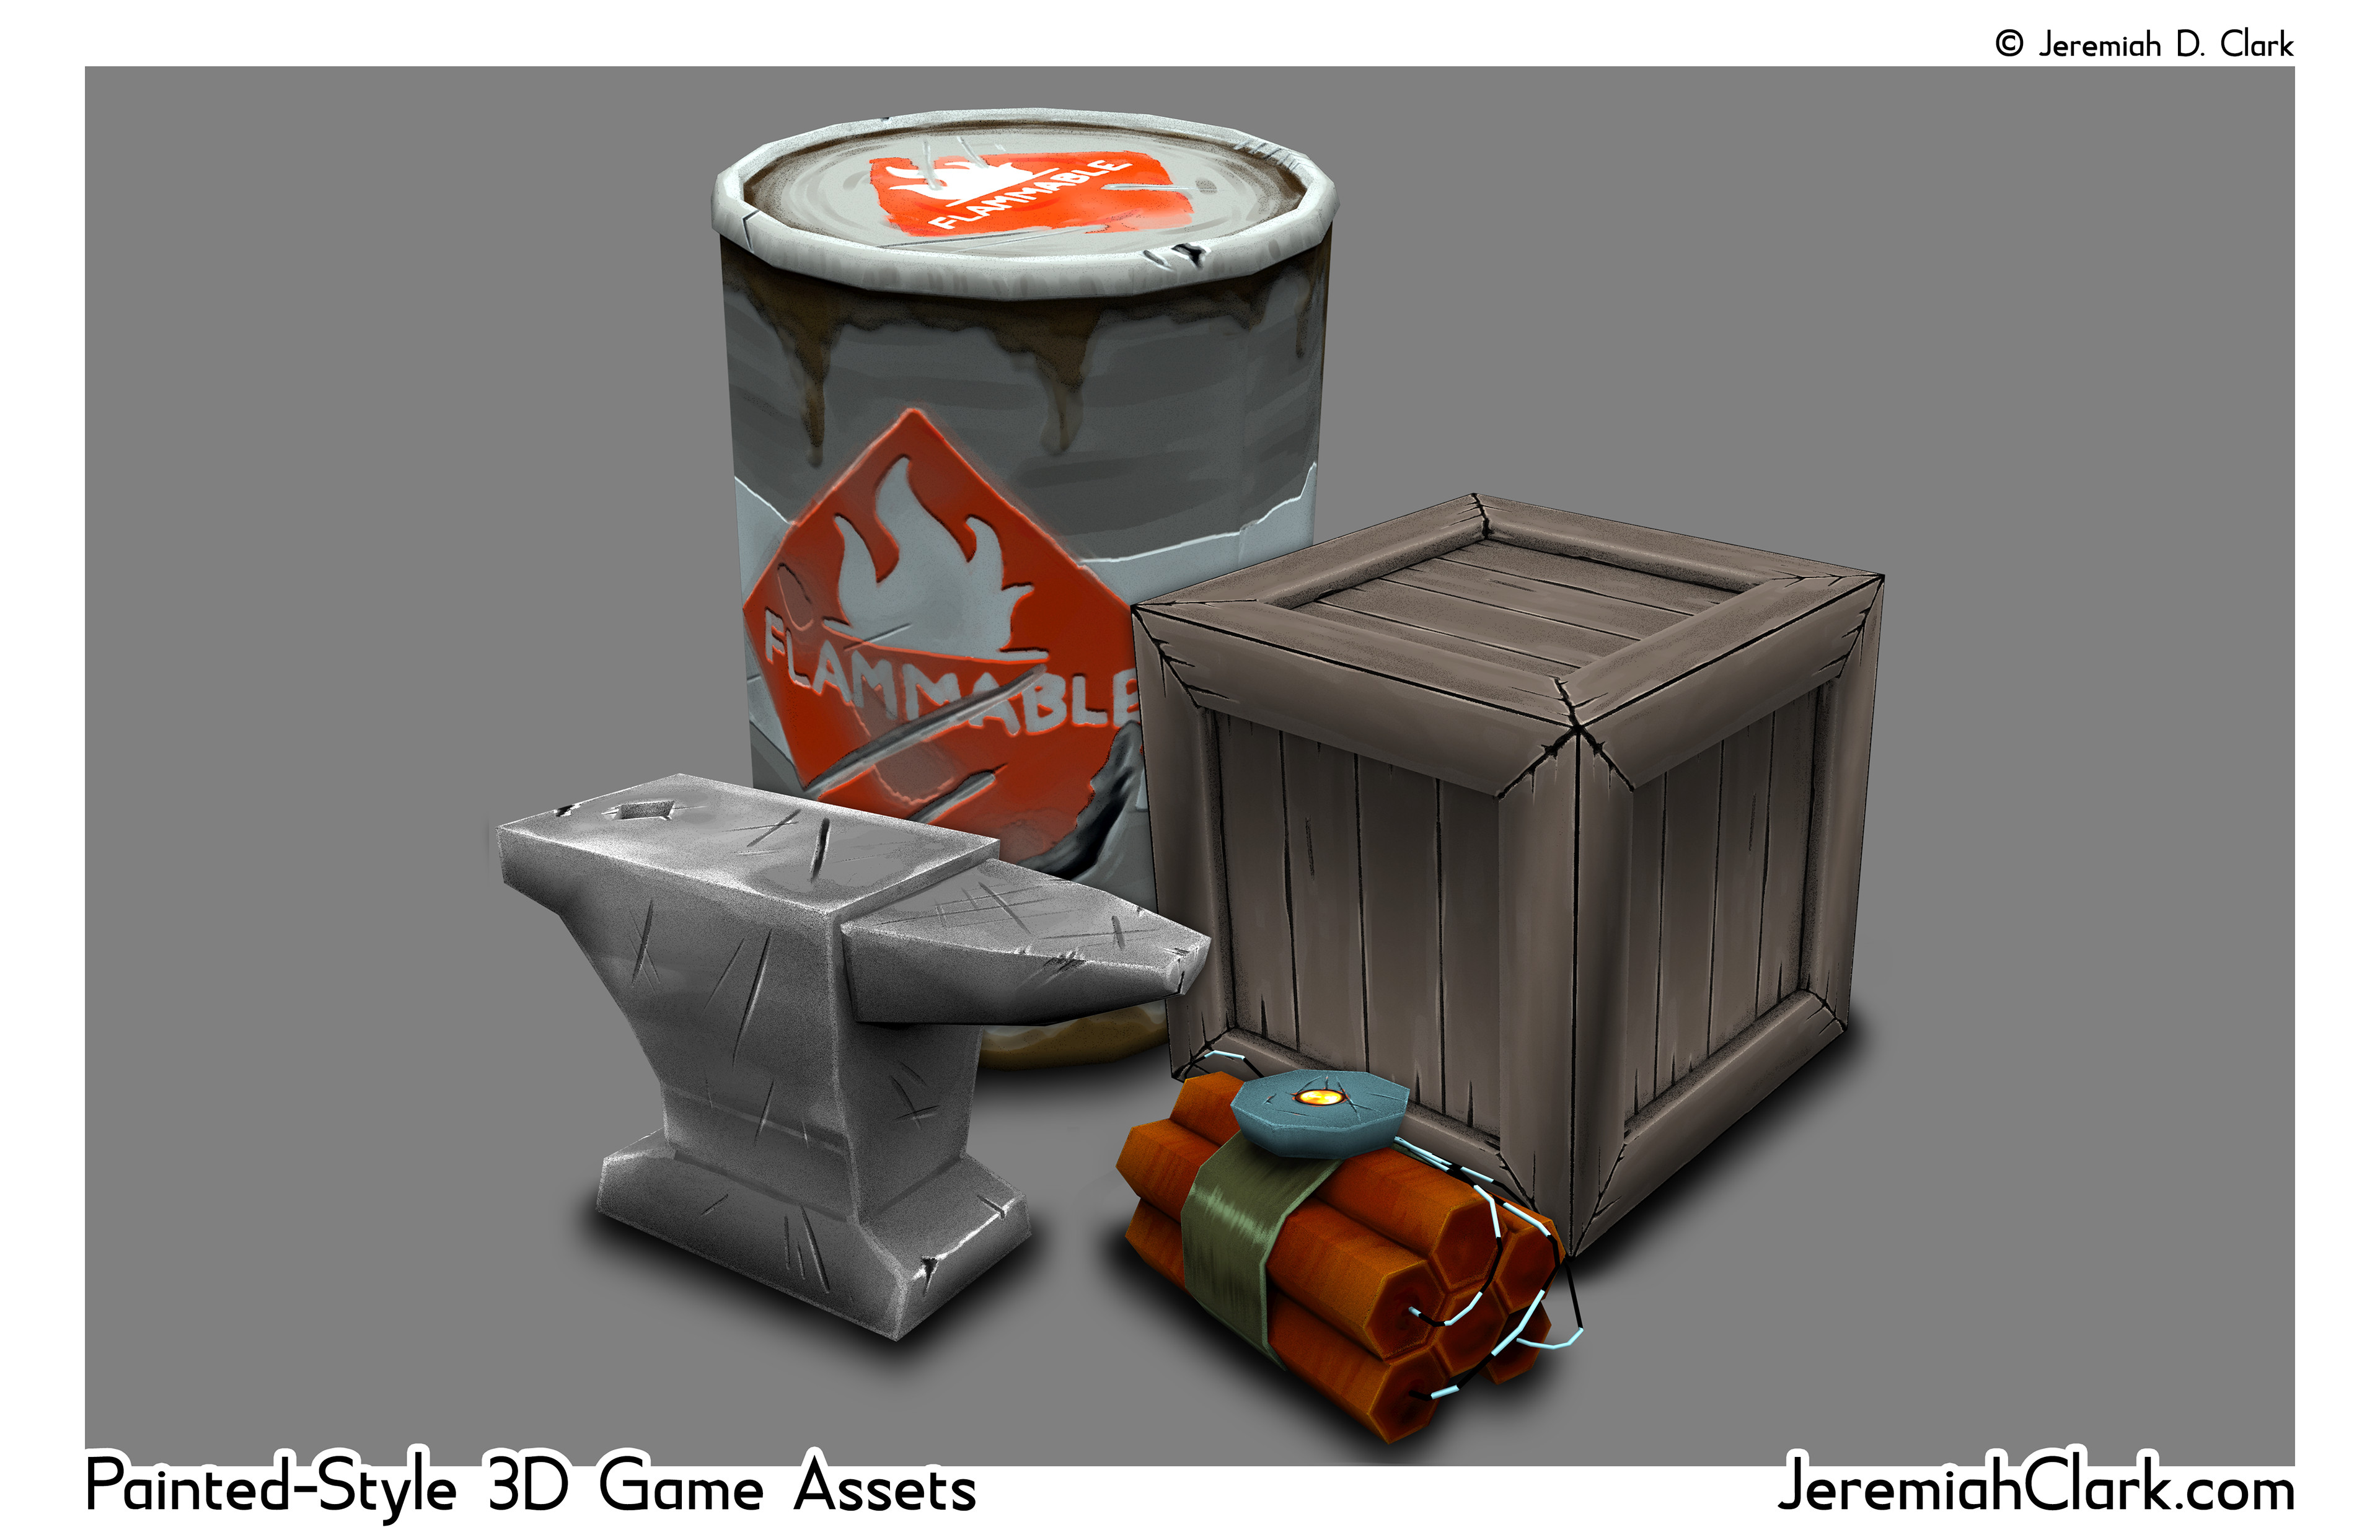 Hand-painted style game assets.